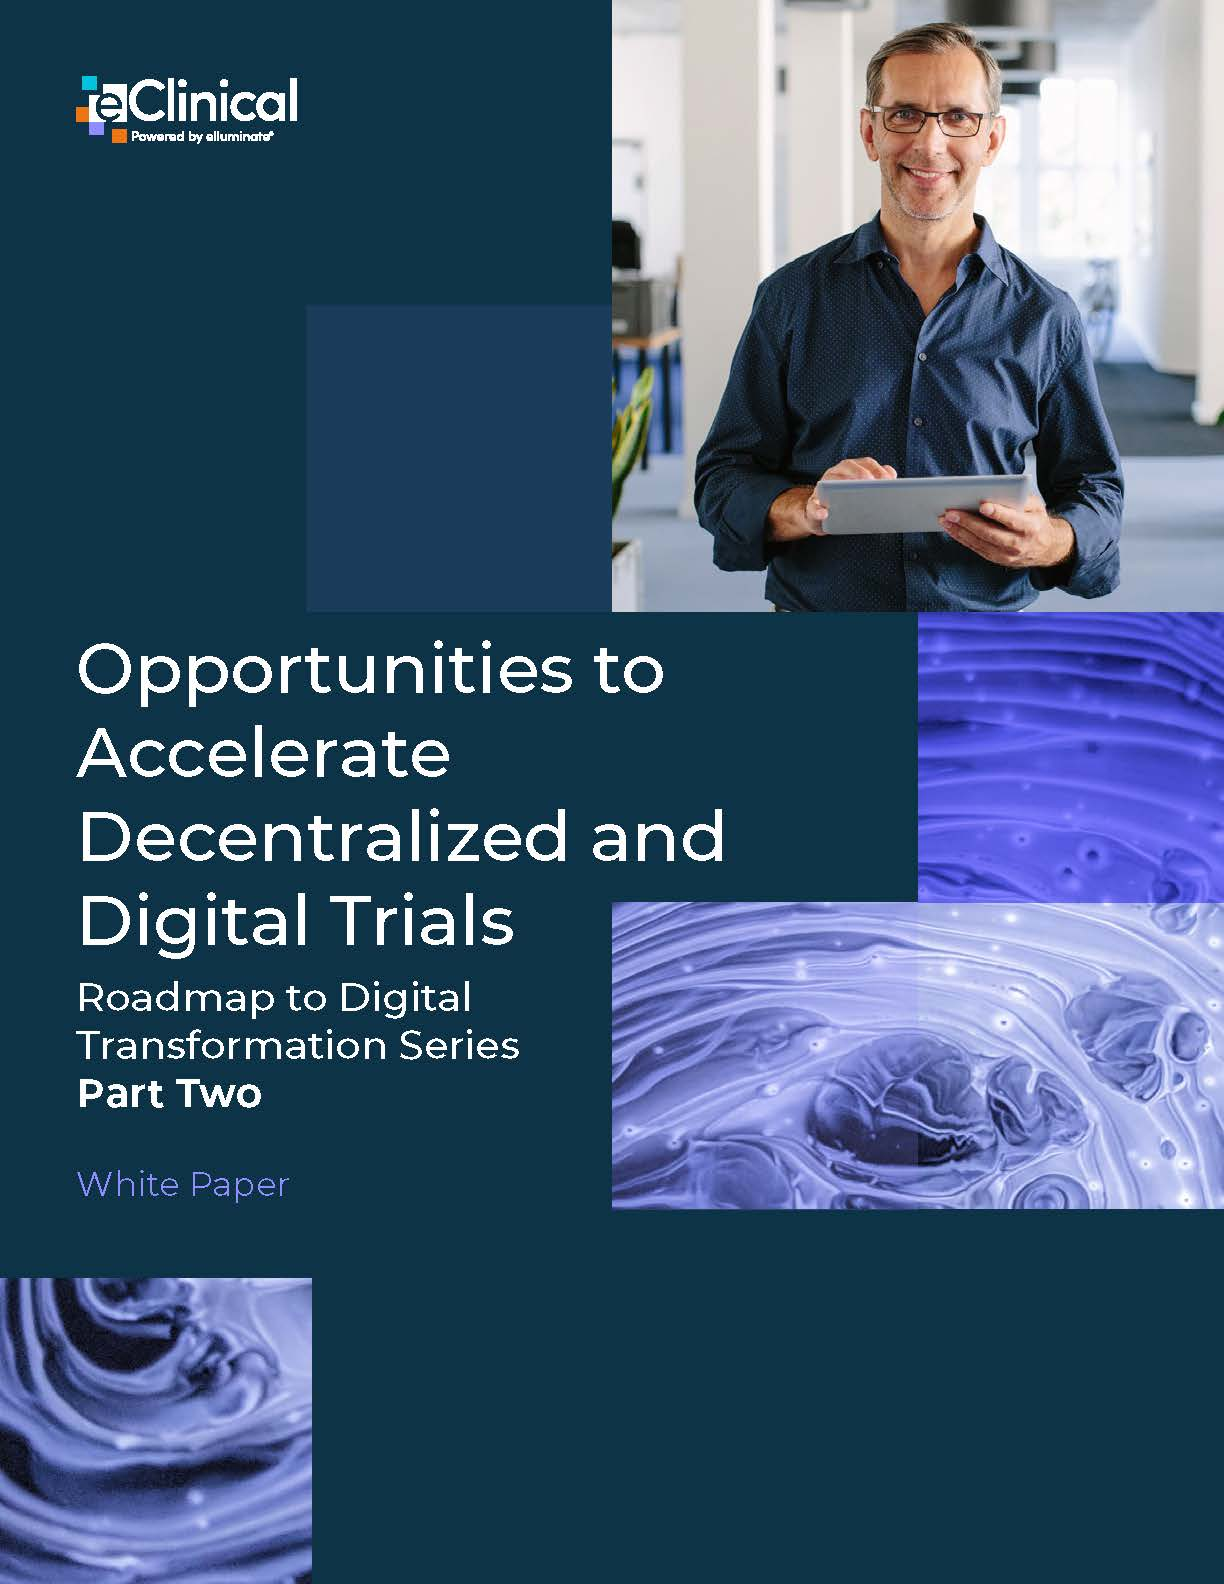 Opportunities to Accelerate Decentralized and Digital Trials